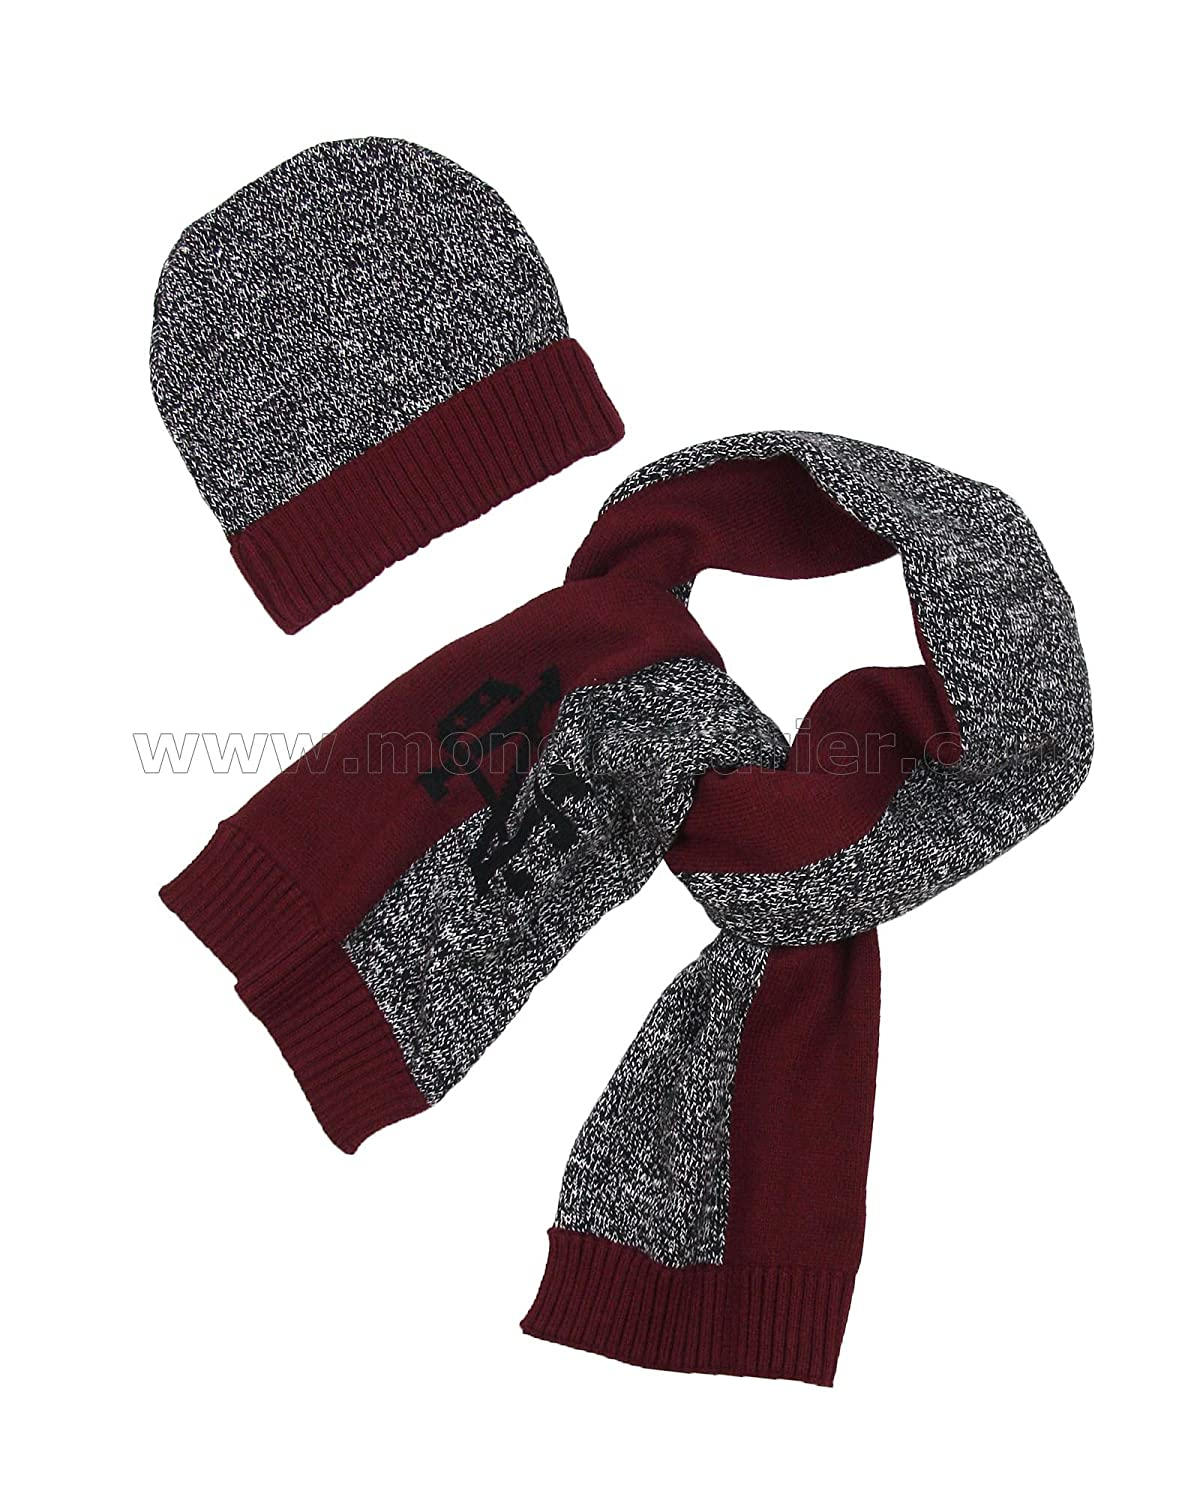 Sizes 8-16 Mayoral Junior Boys Hat and Scarf Set Burgundy